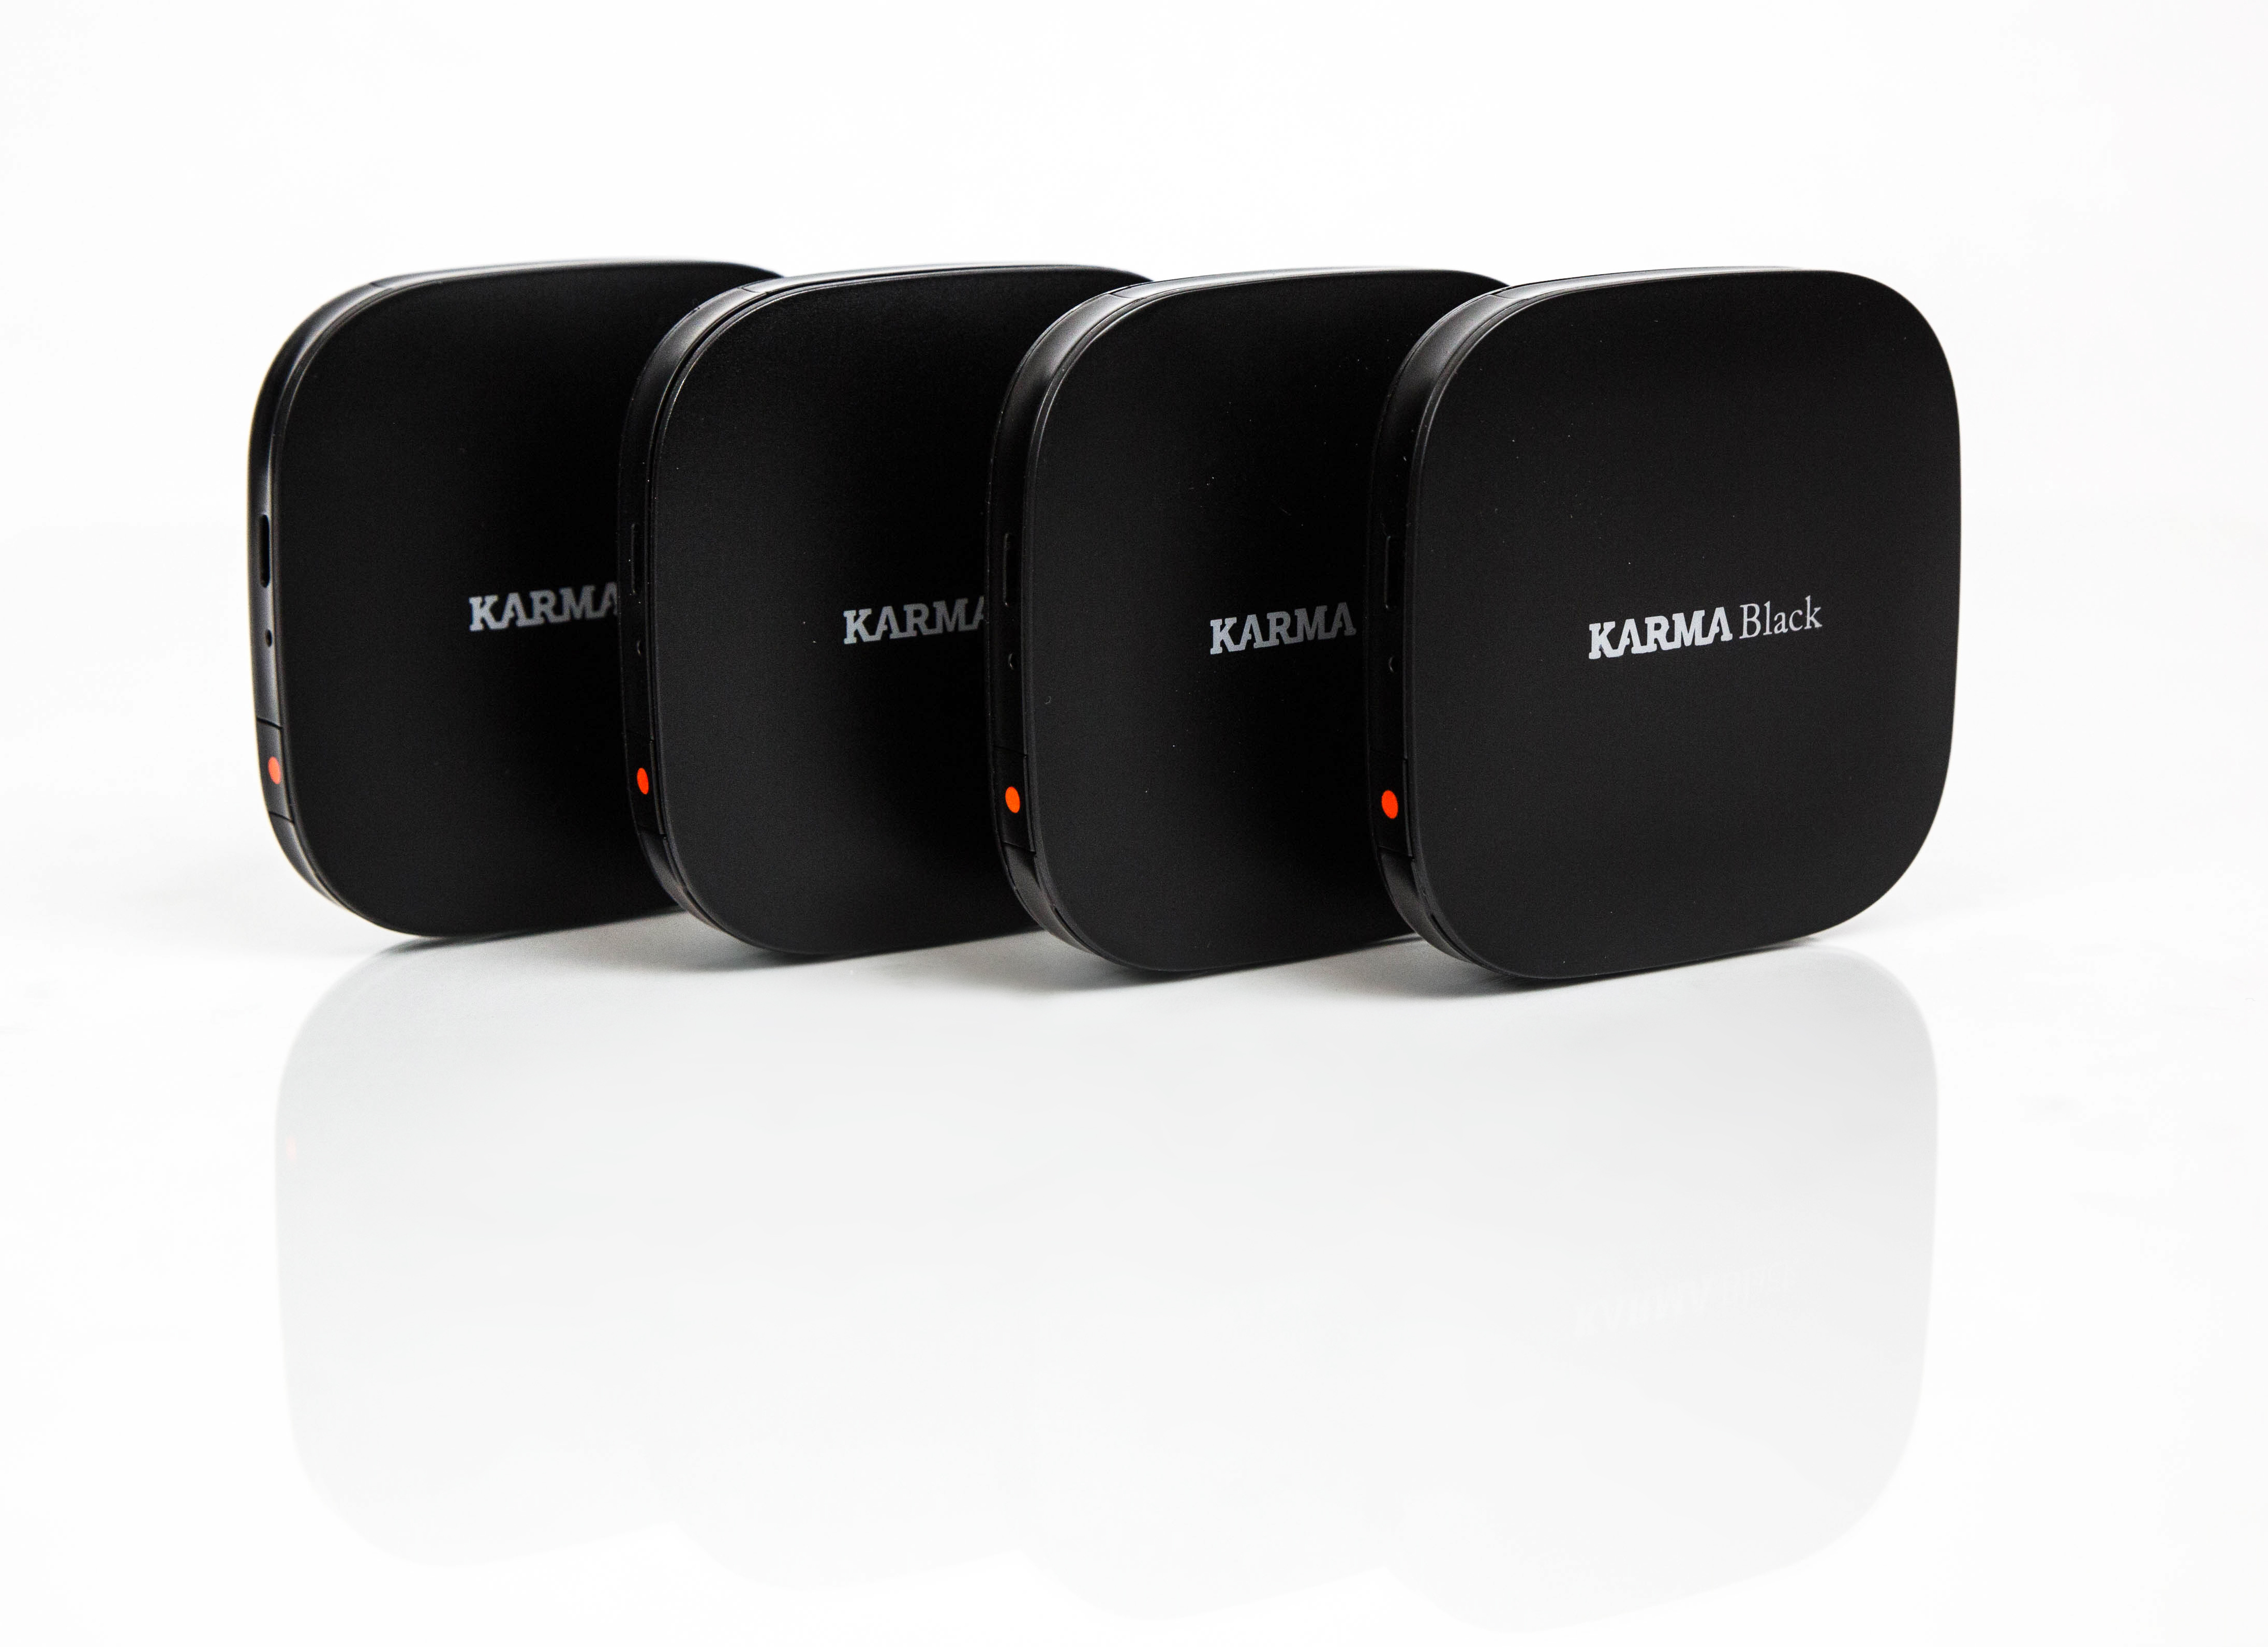 Karma's anonymous LTE hotspot goes on sale next month